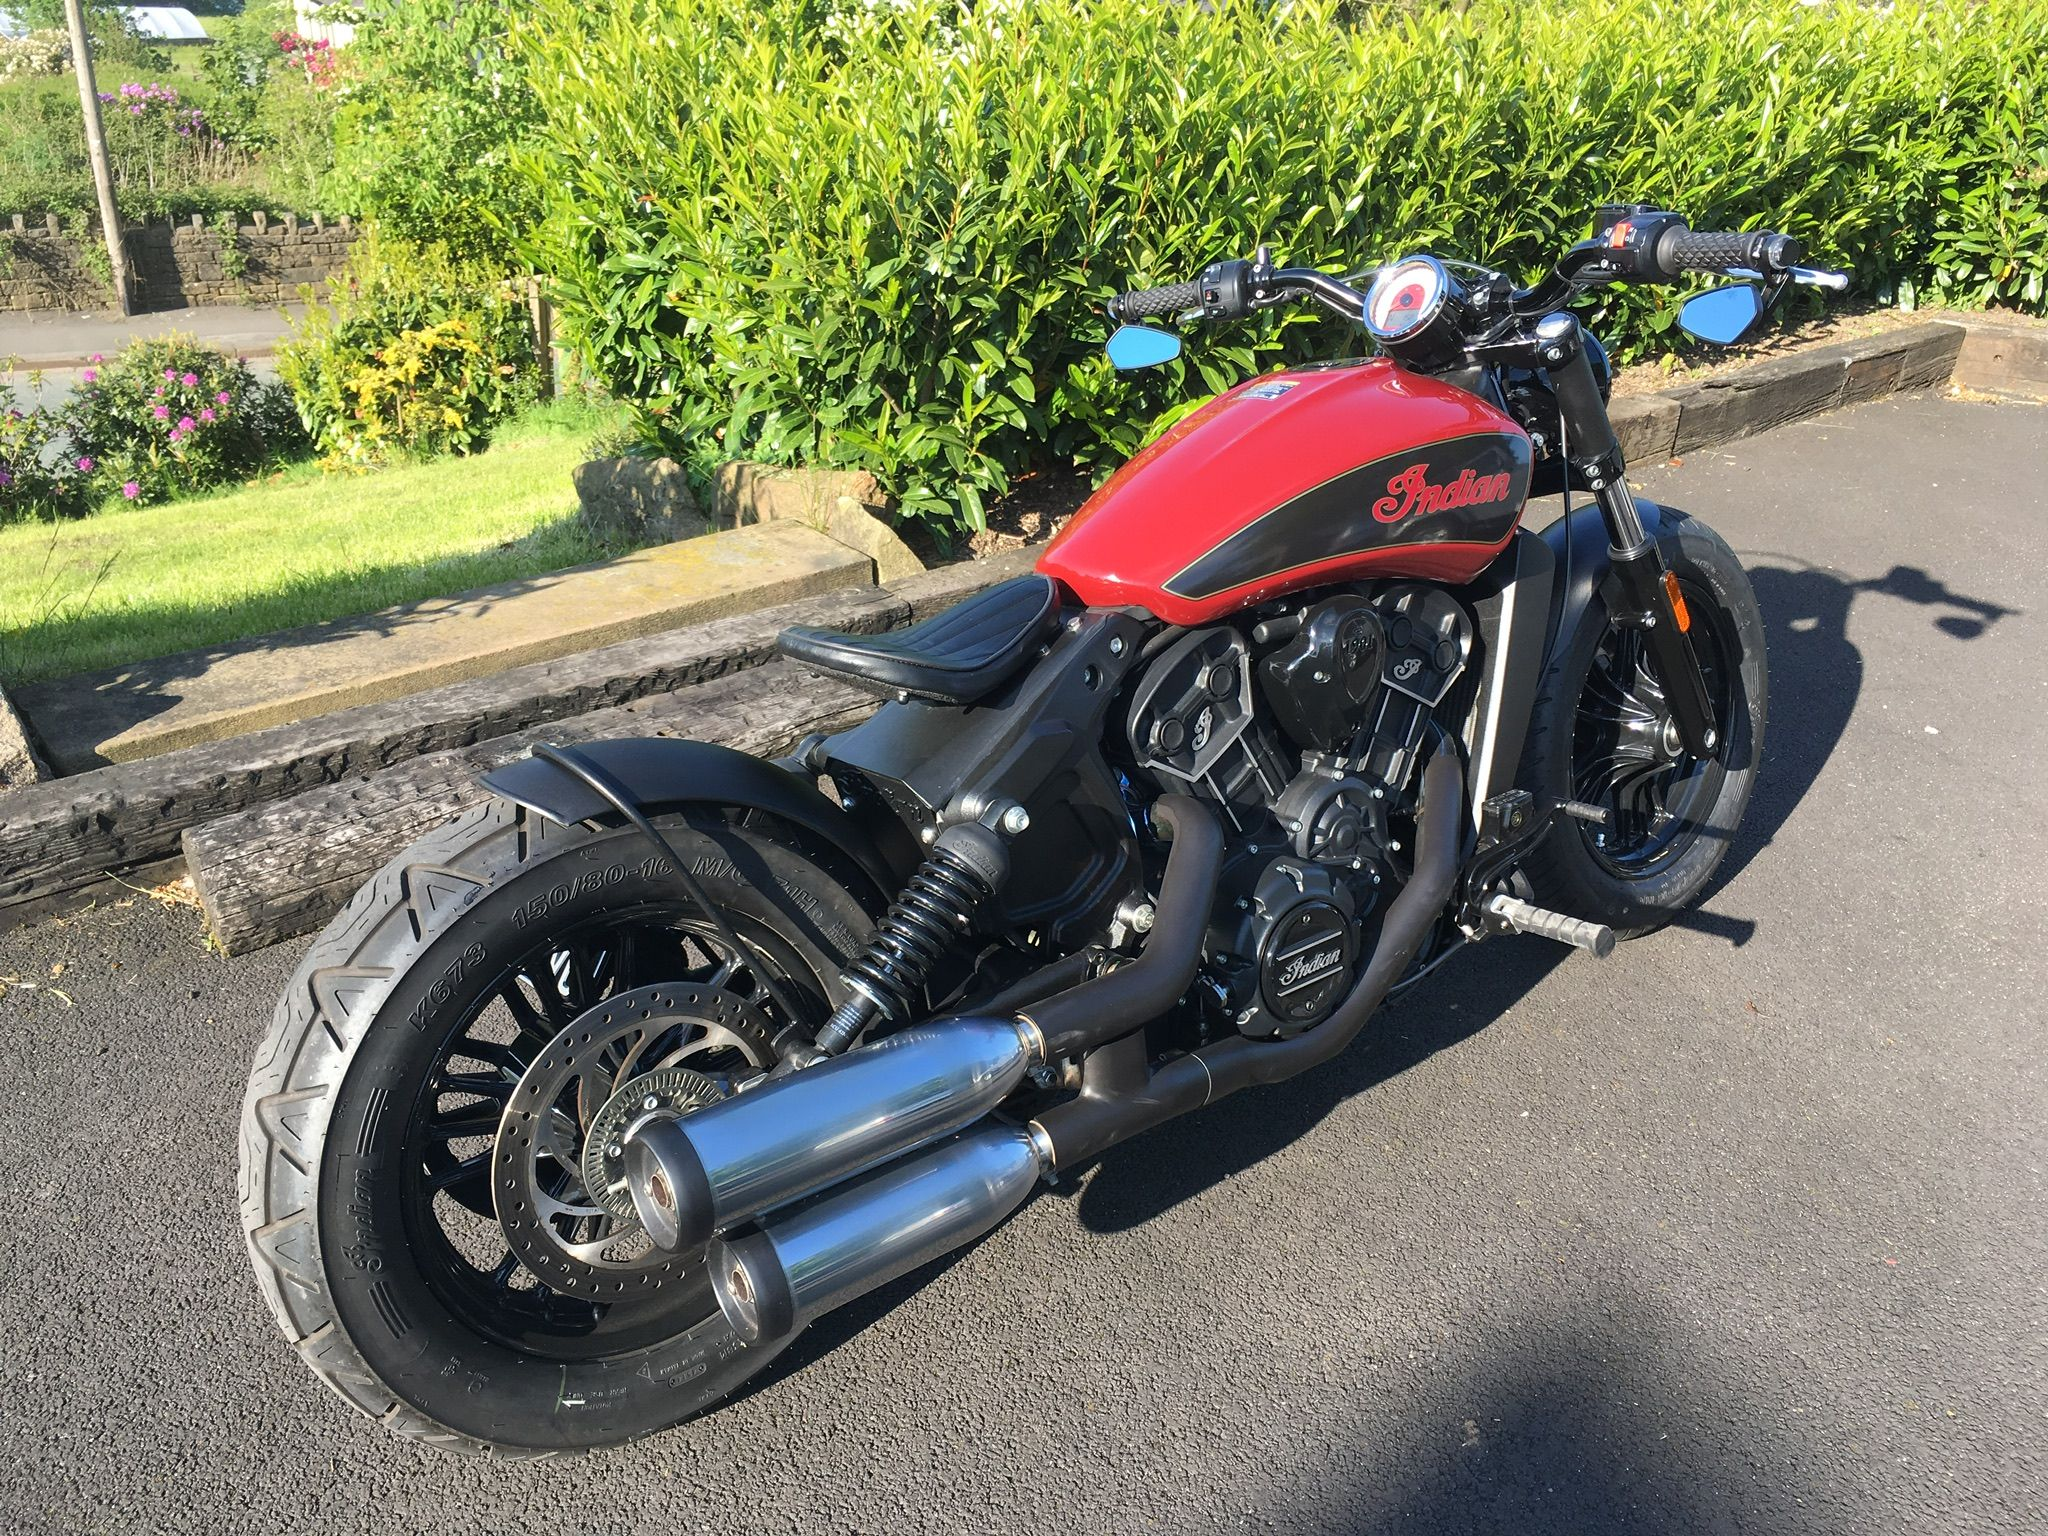 Pin by Mark Stubbins on Indian scout custom | Indian scout ...